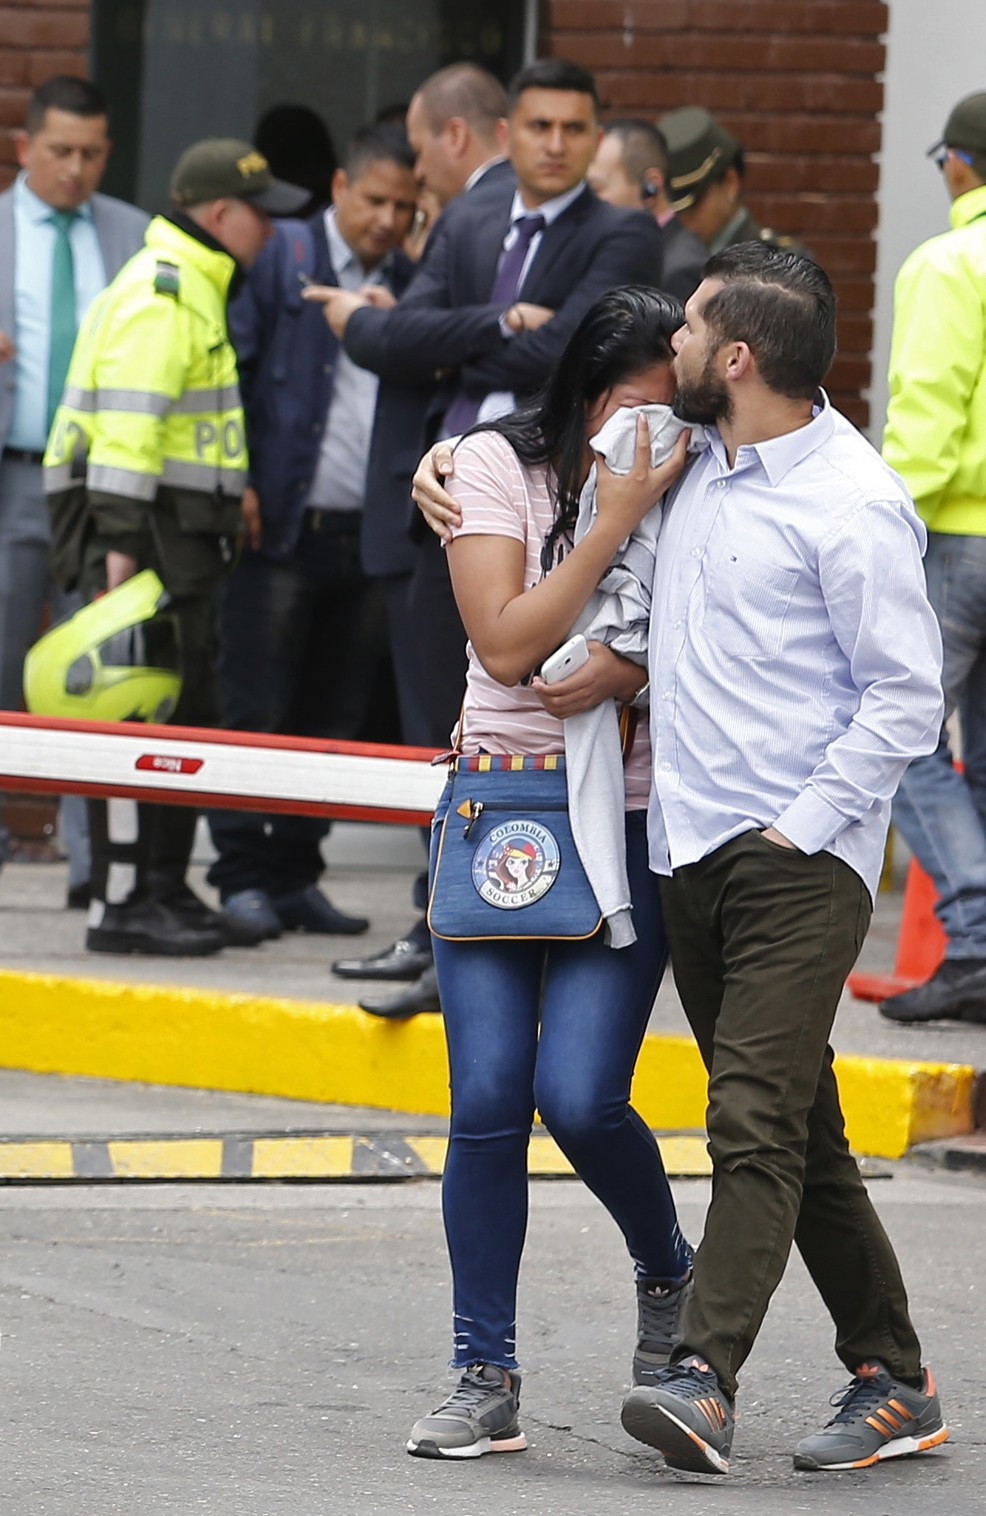 Family members of victims of a bombing embrace outside the entrance to the General Santander police academy where the bombing took place in Bogota, Co...